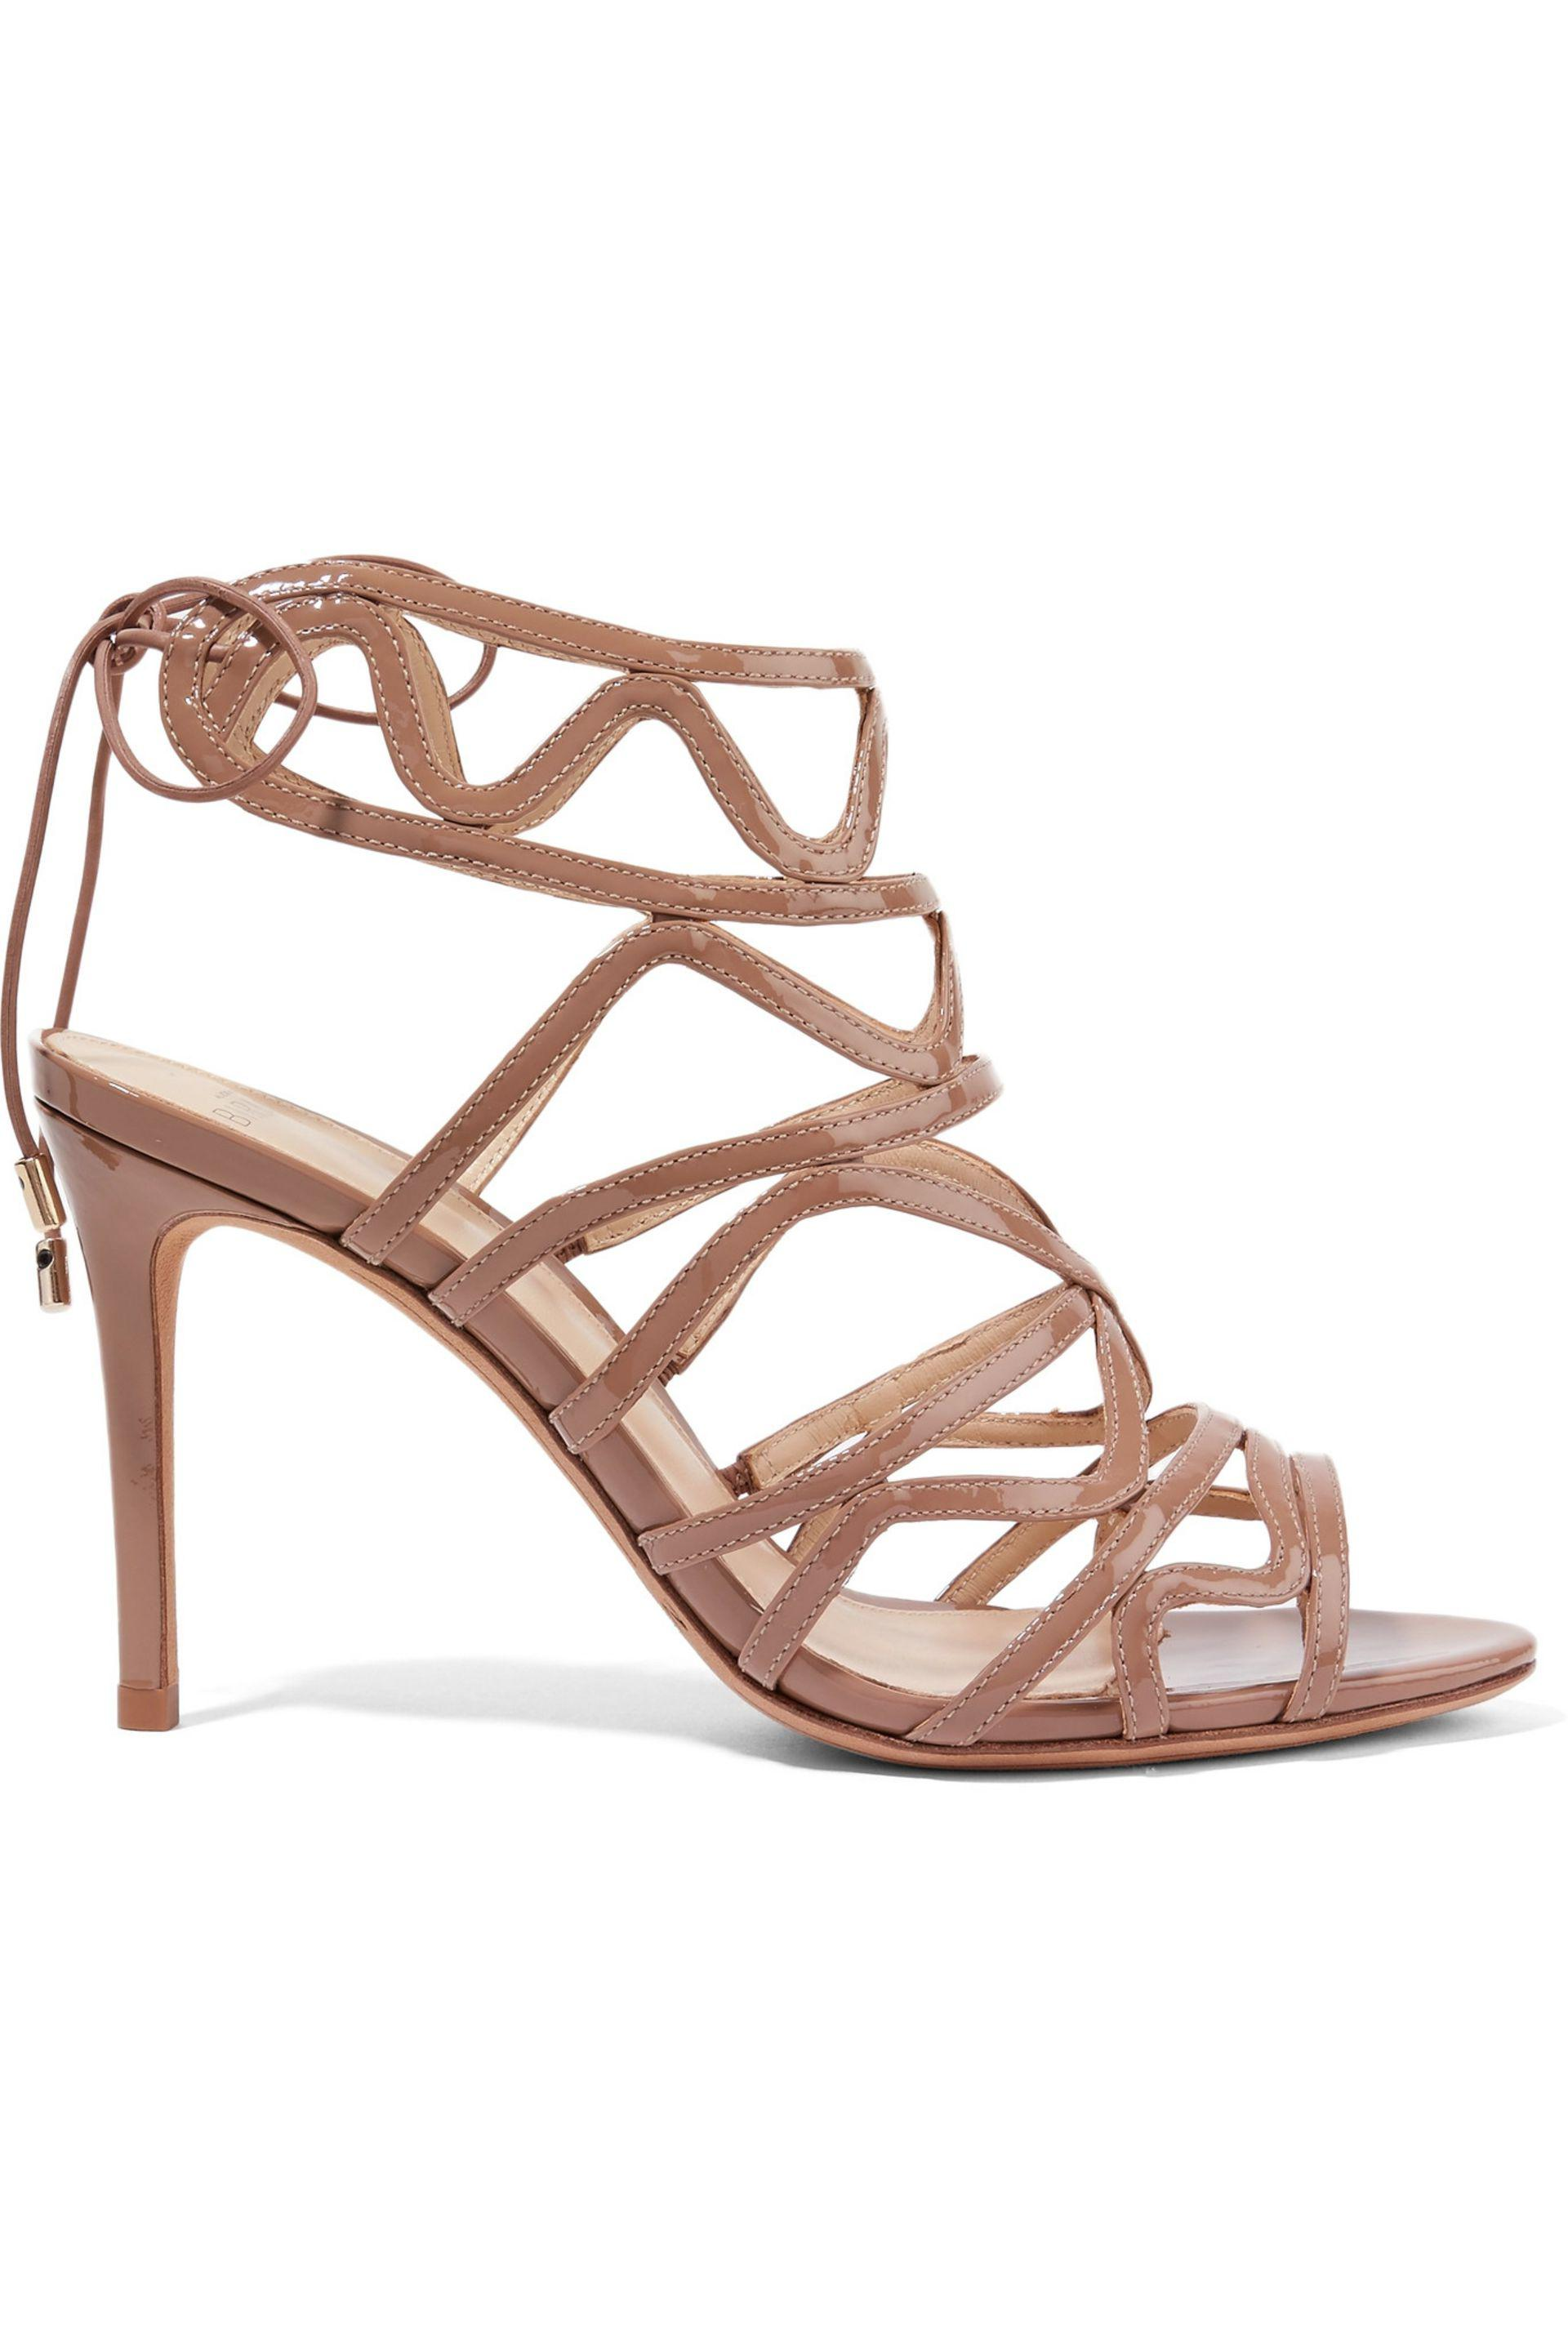 where can i order cheap price free shipping Alexandre Birman Patent Leather Laser-Cut Sandals discount amazing price cheap with paypal nicekicks cheap online B5CB7s8Z